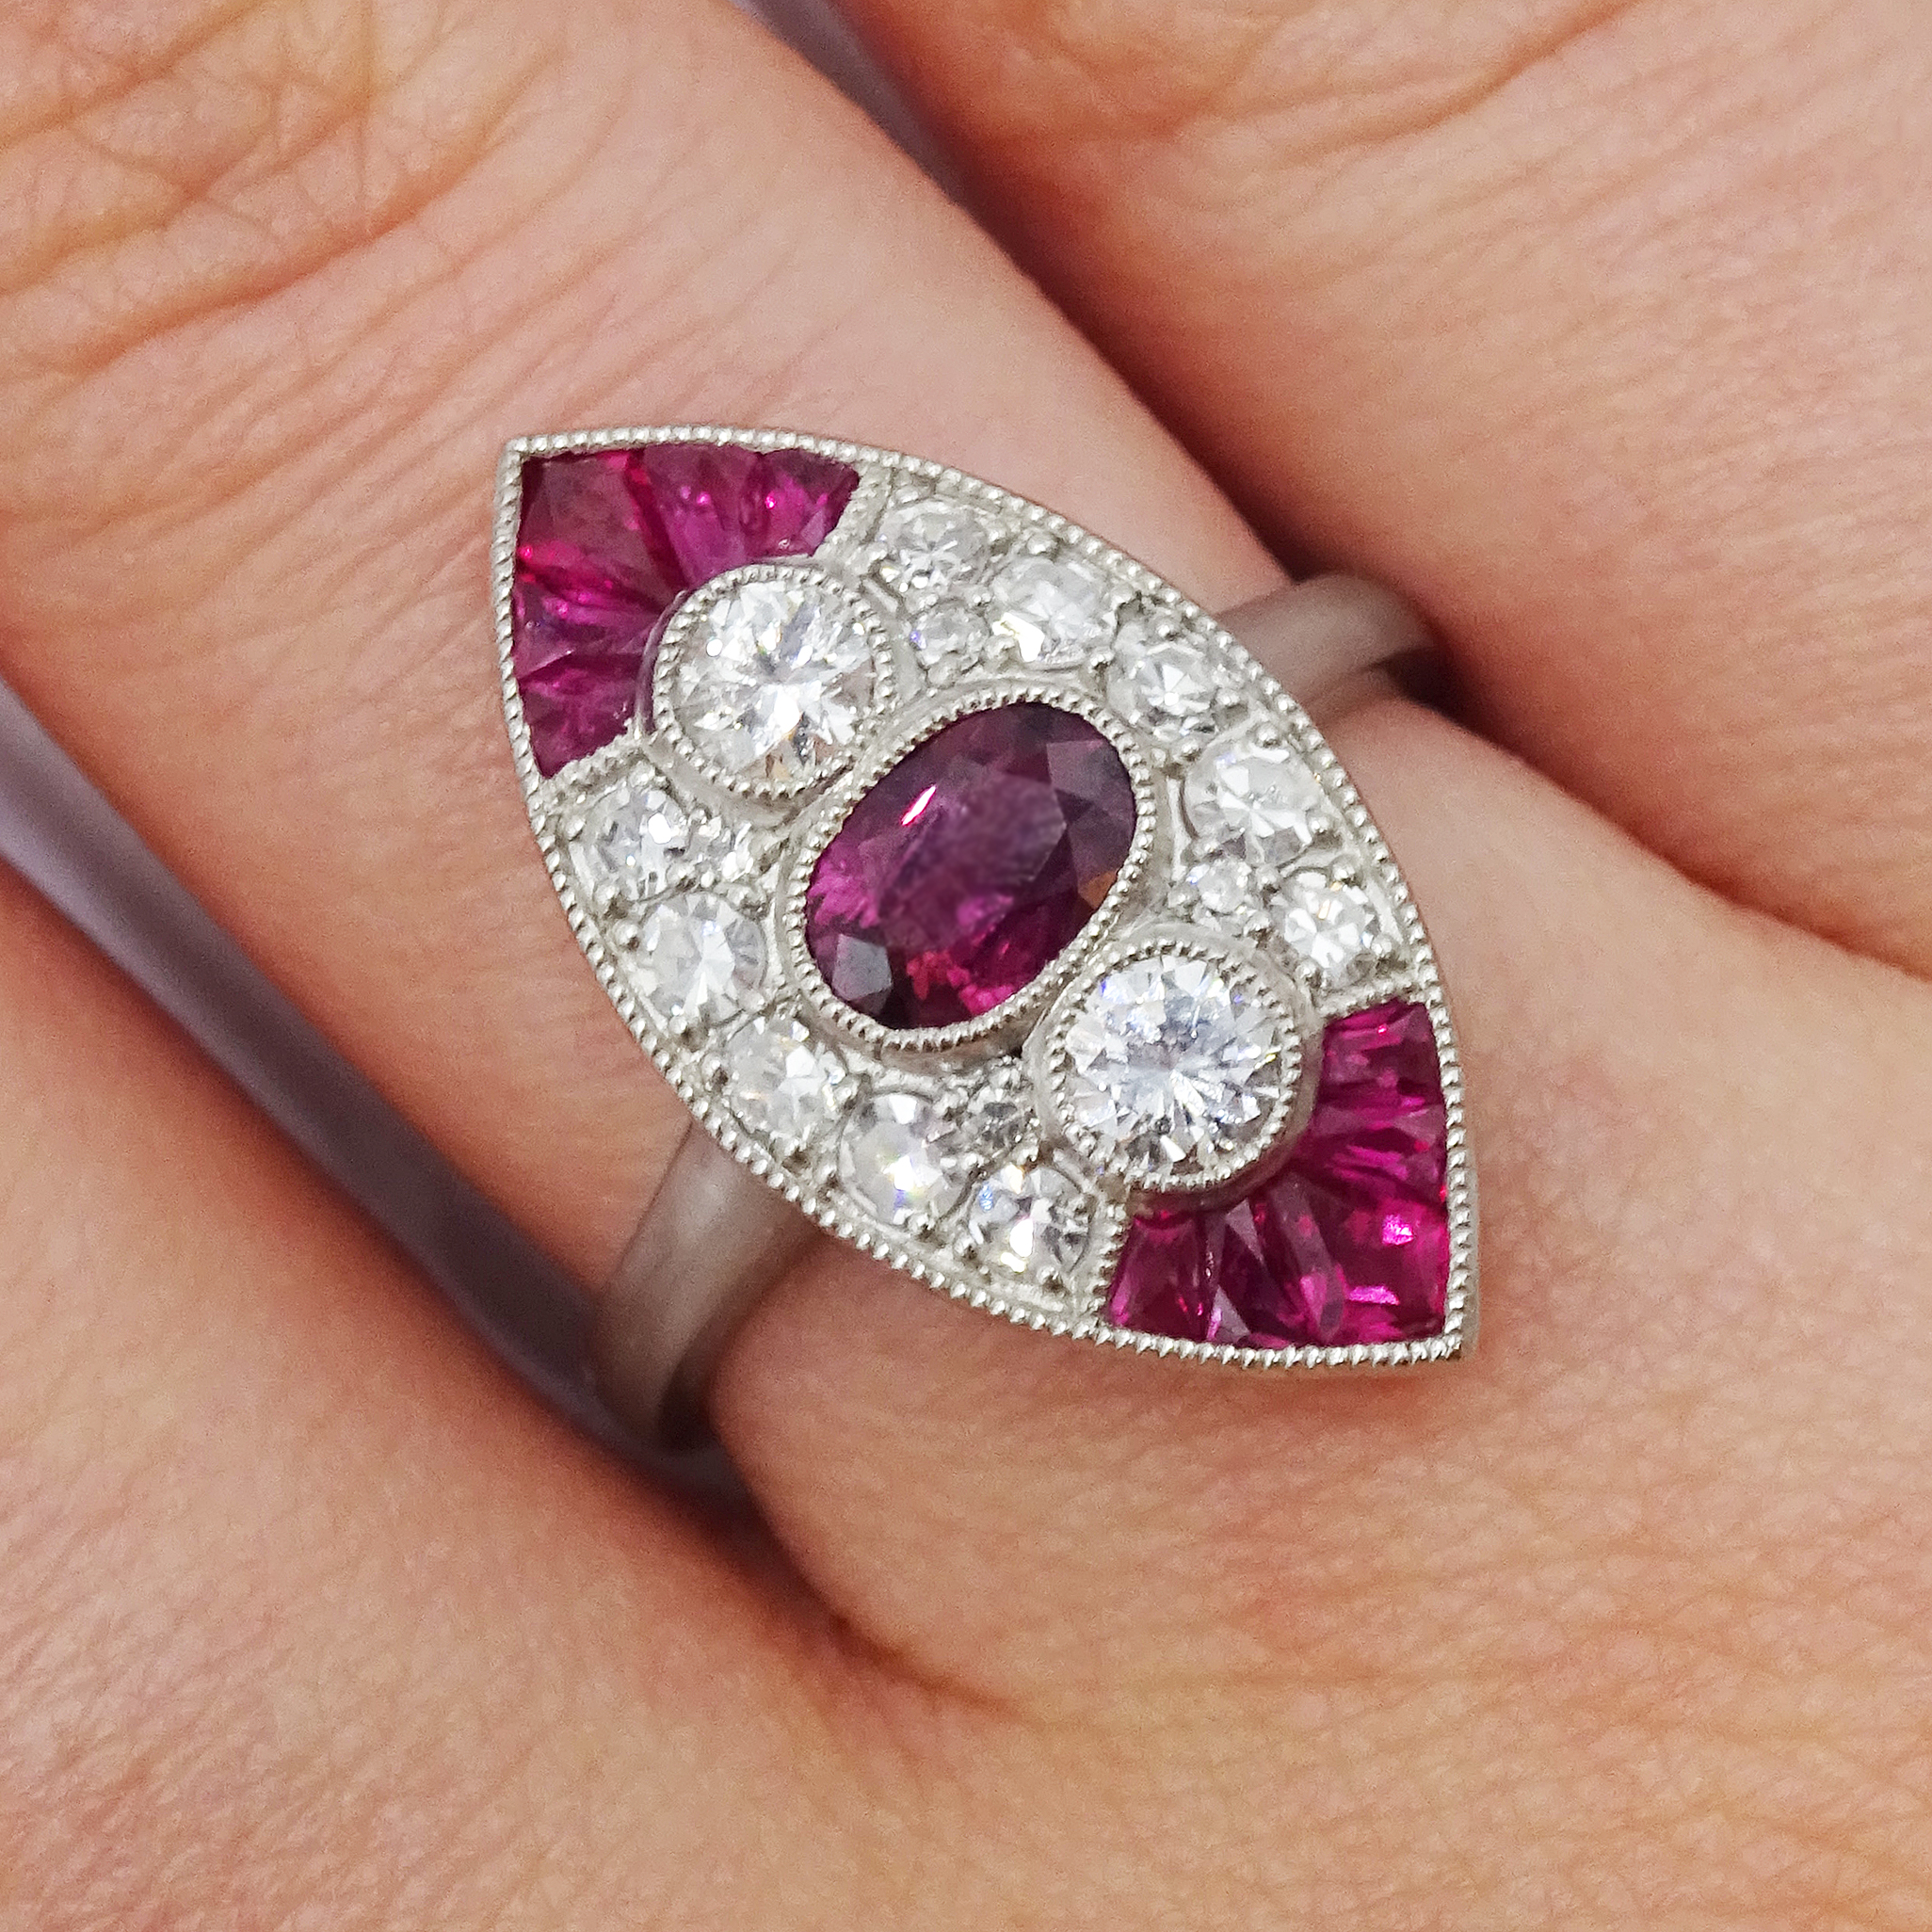 Victorian style marquise shaped platinum ring set with rubies and diamonds, free UK mainland - Image 2 of 6